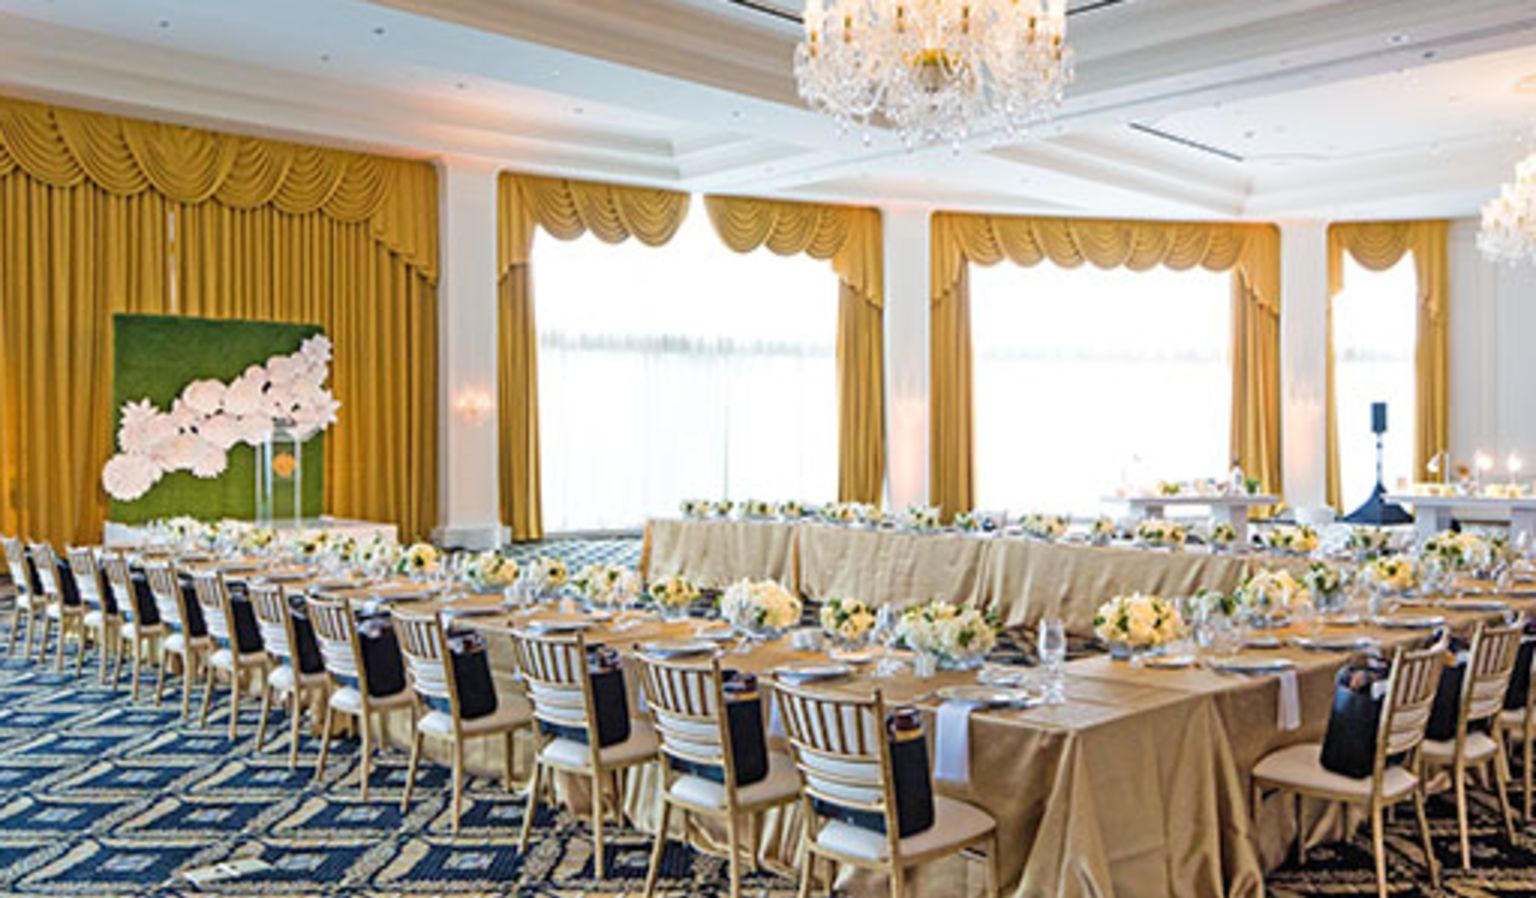 Ballroom with Long Tables & Chairs